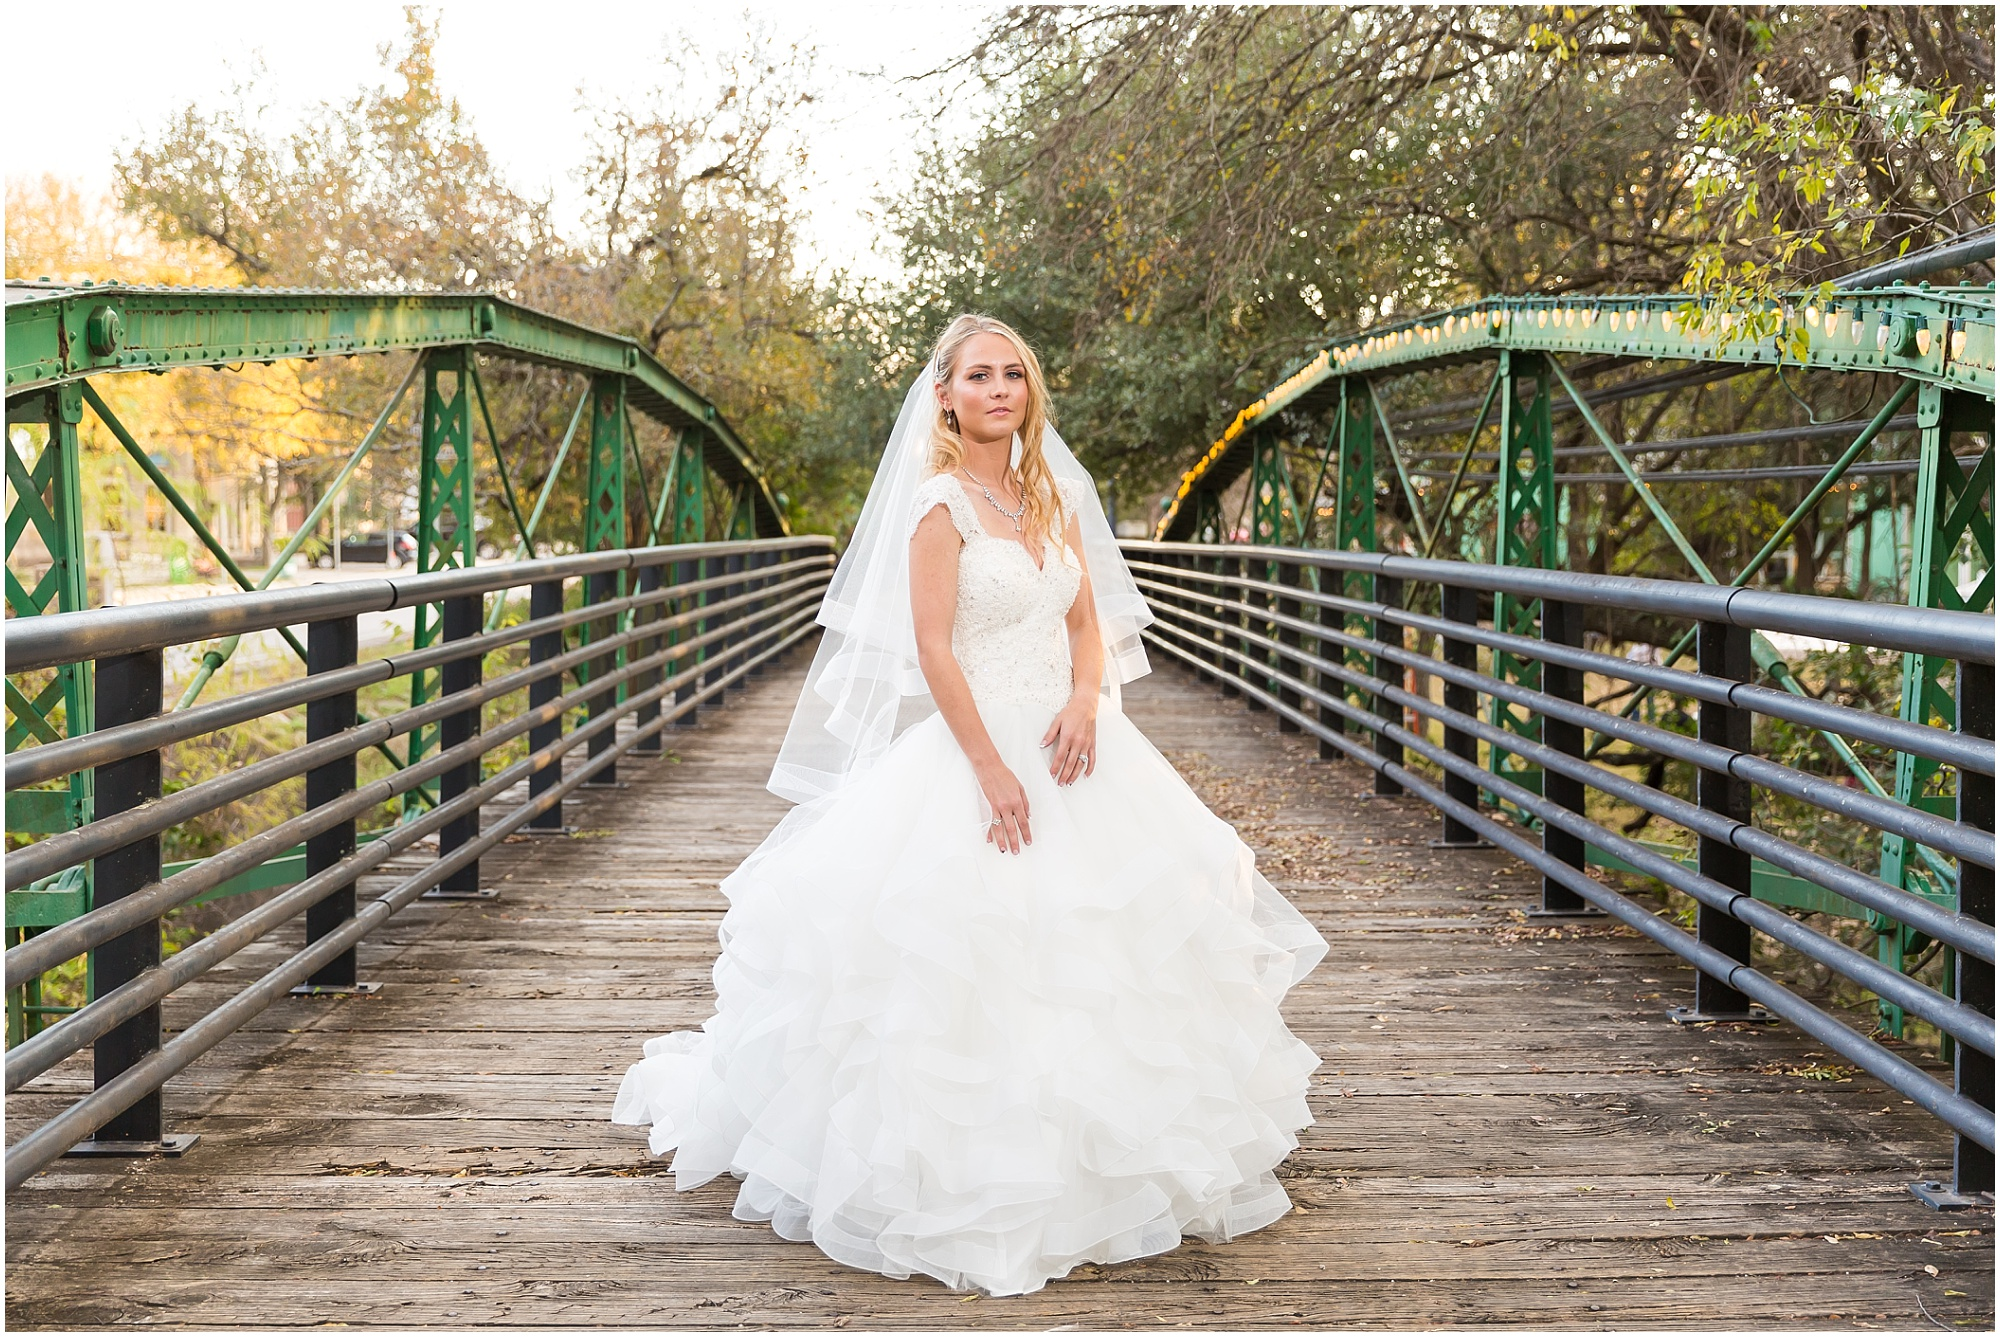 Bridal-Portraits-Salado-Texas_0007.jpg